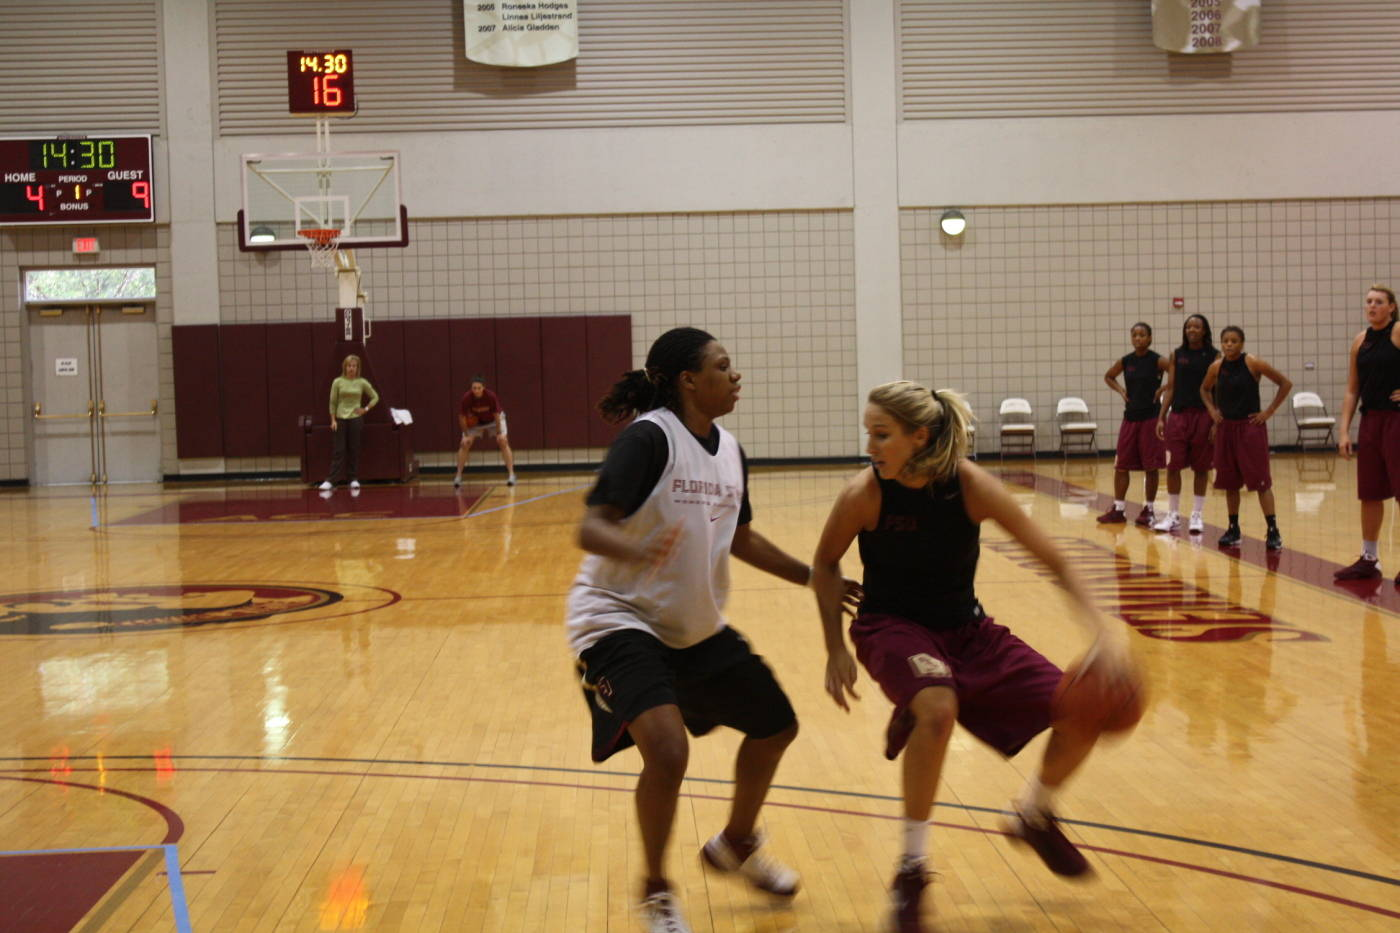 Kayli Keough and former Seminole Tanae Davis-Cain